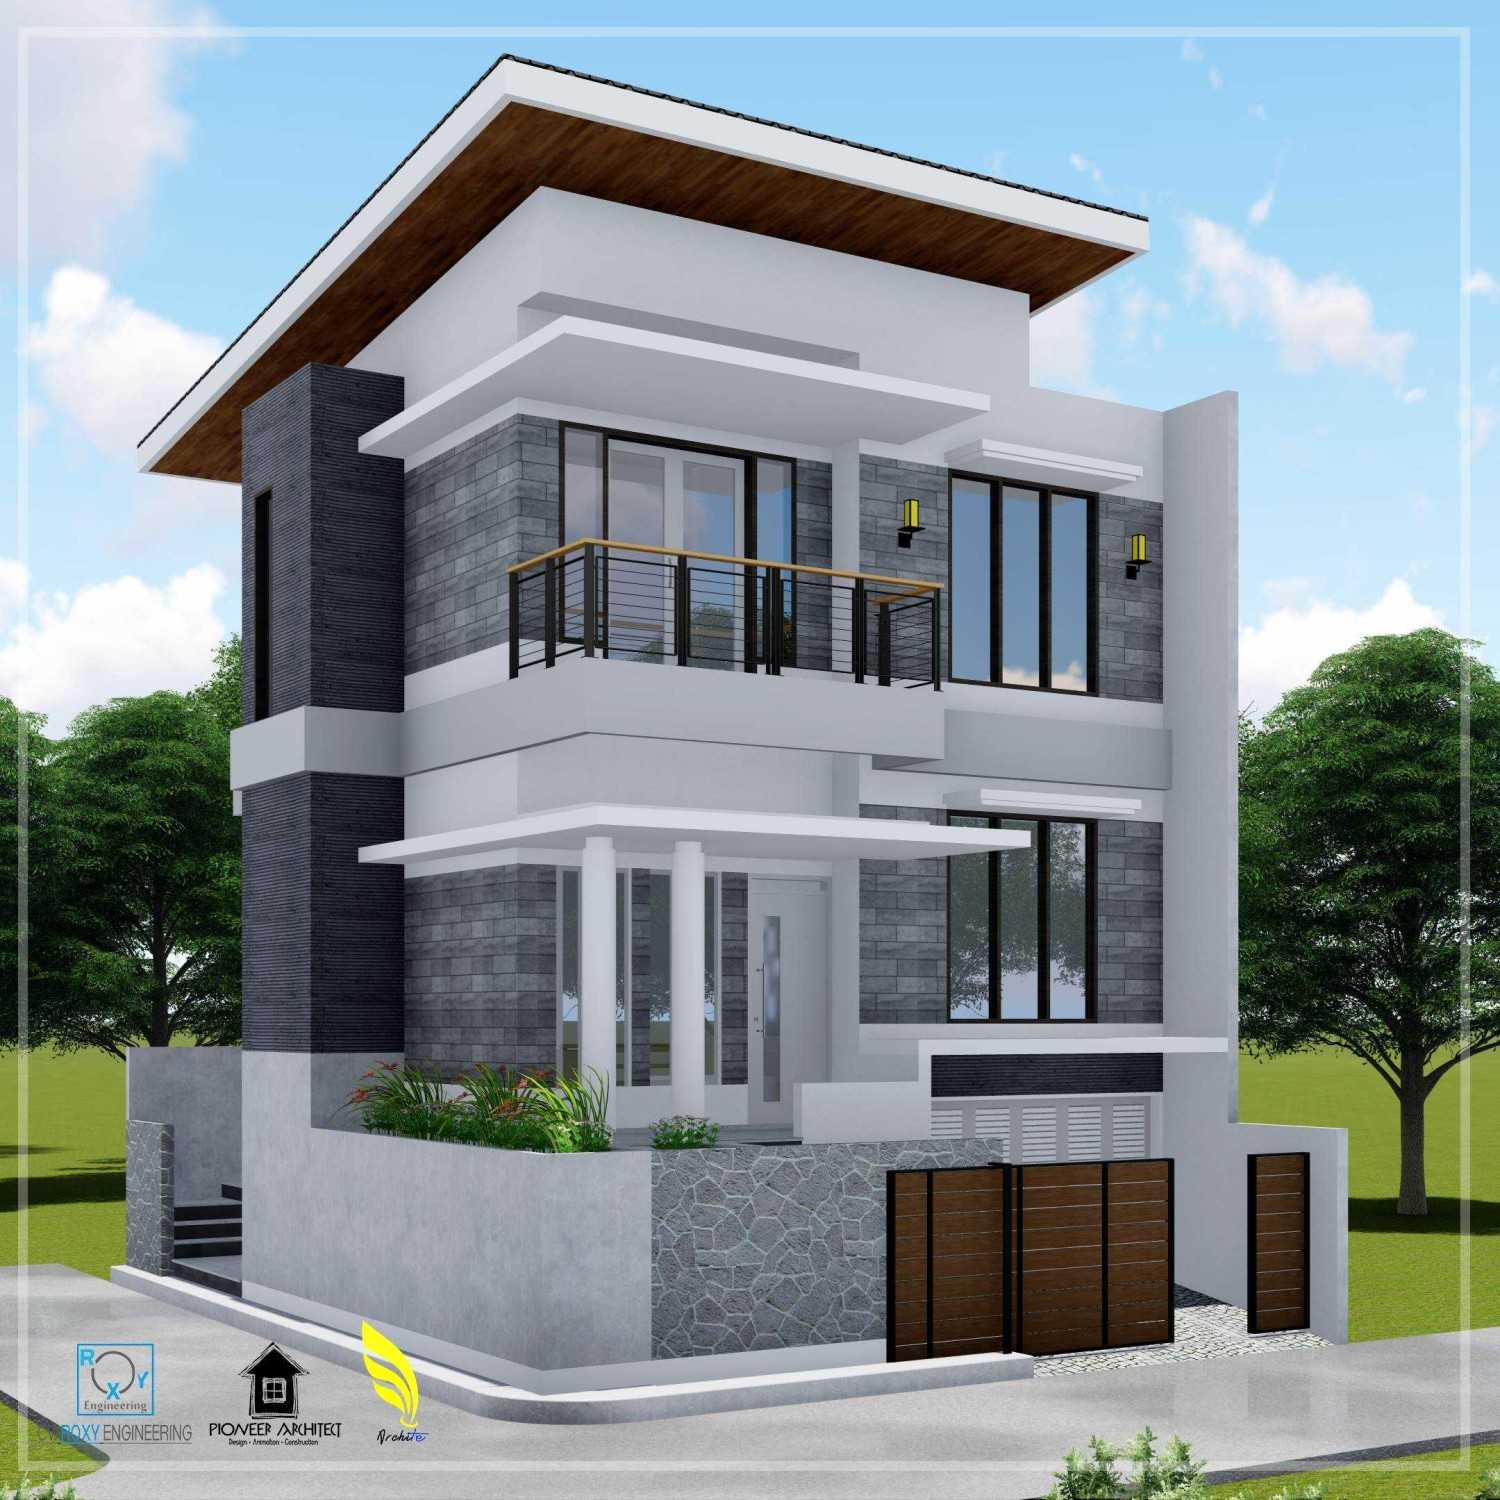 Pionner Architect N House Lhokseumawe, Kota Lhokseumawe, Aceh, Indonesia Lhokseumawe, Kota Lhokseumawe, Aceh, Indonesia Side View Modern 43258